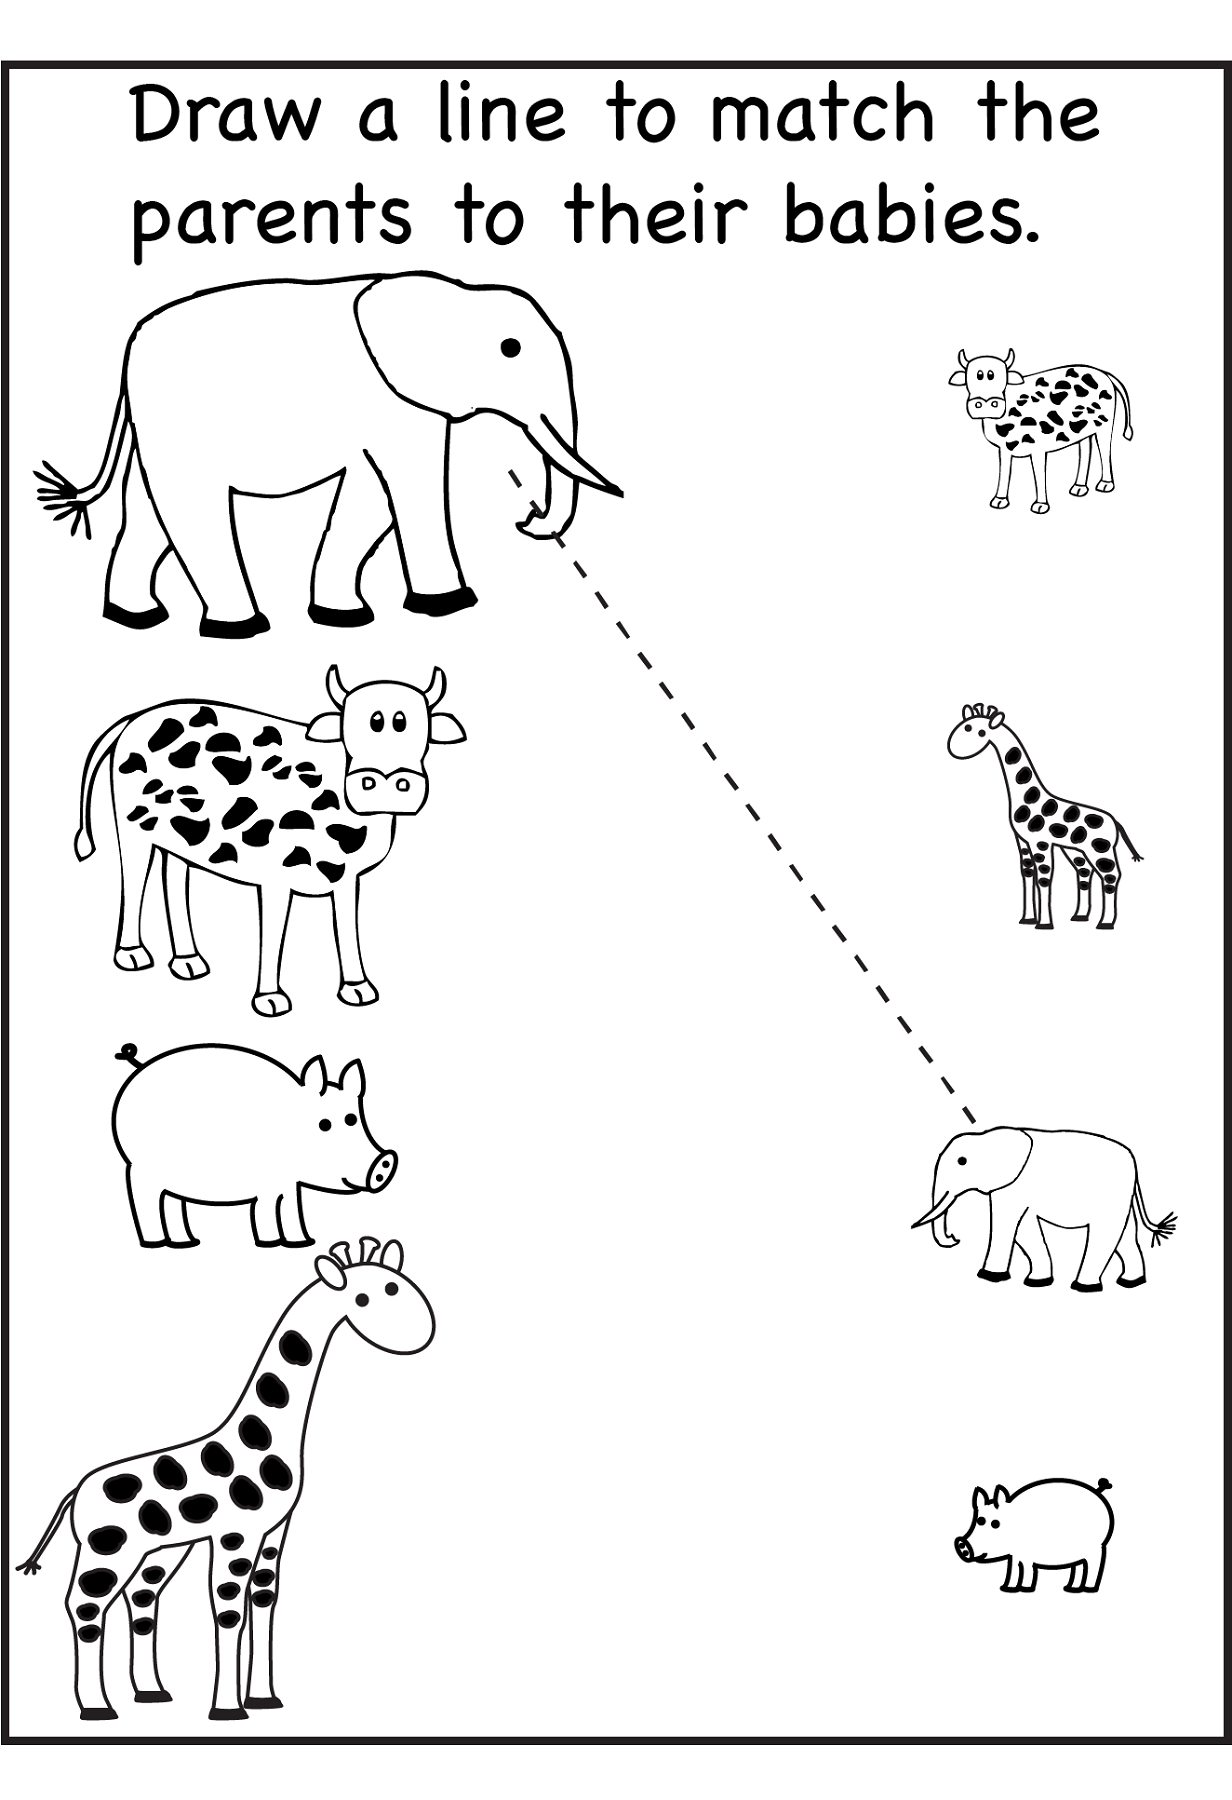 Printable Activity Sheets for Kids | Preschool worksheets ...